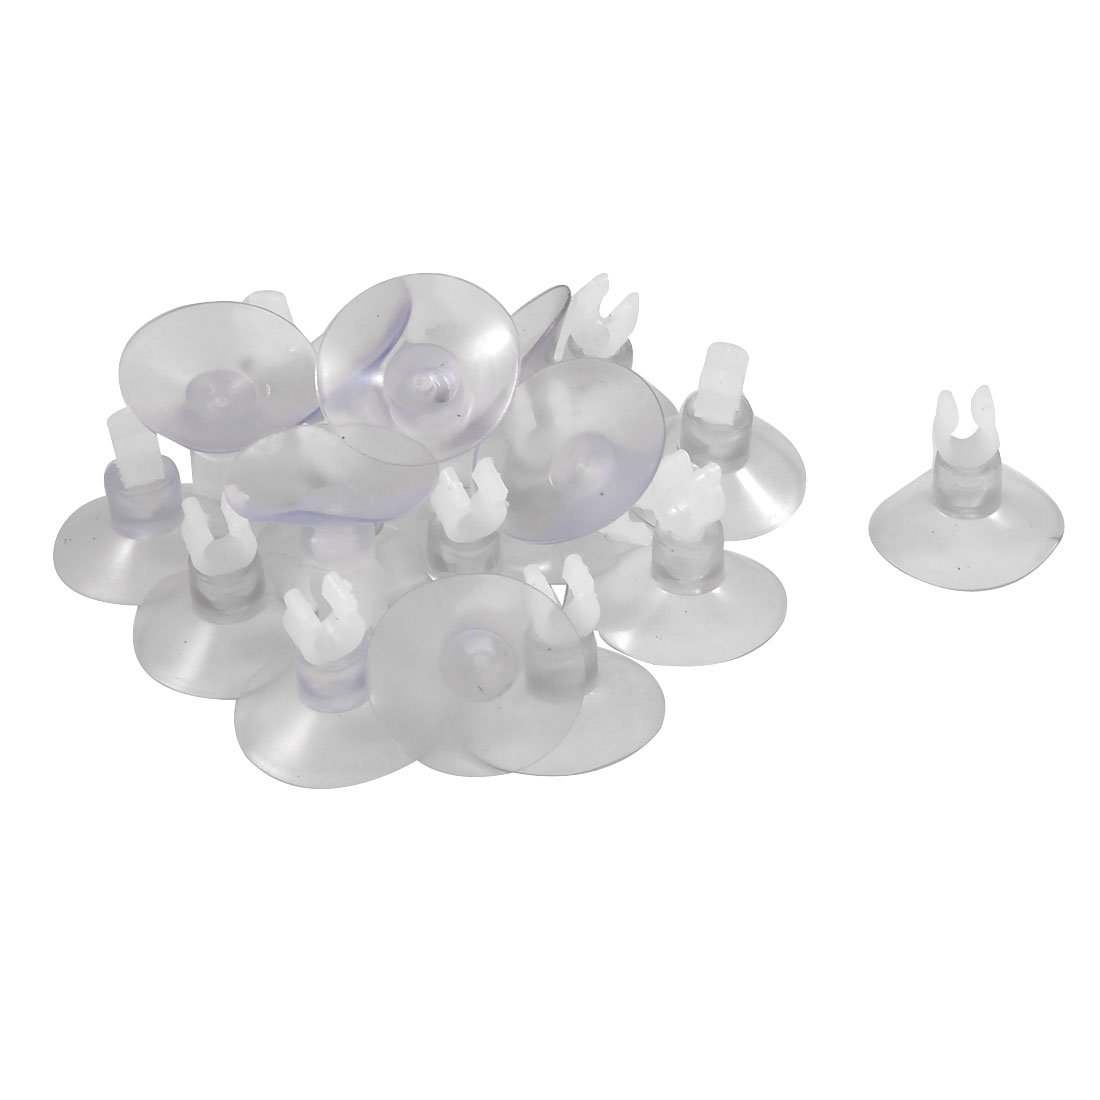 Amazon.com : Jardin Suction Cup Airline Tube 20-Piece Holders ...